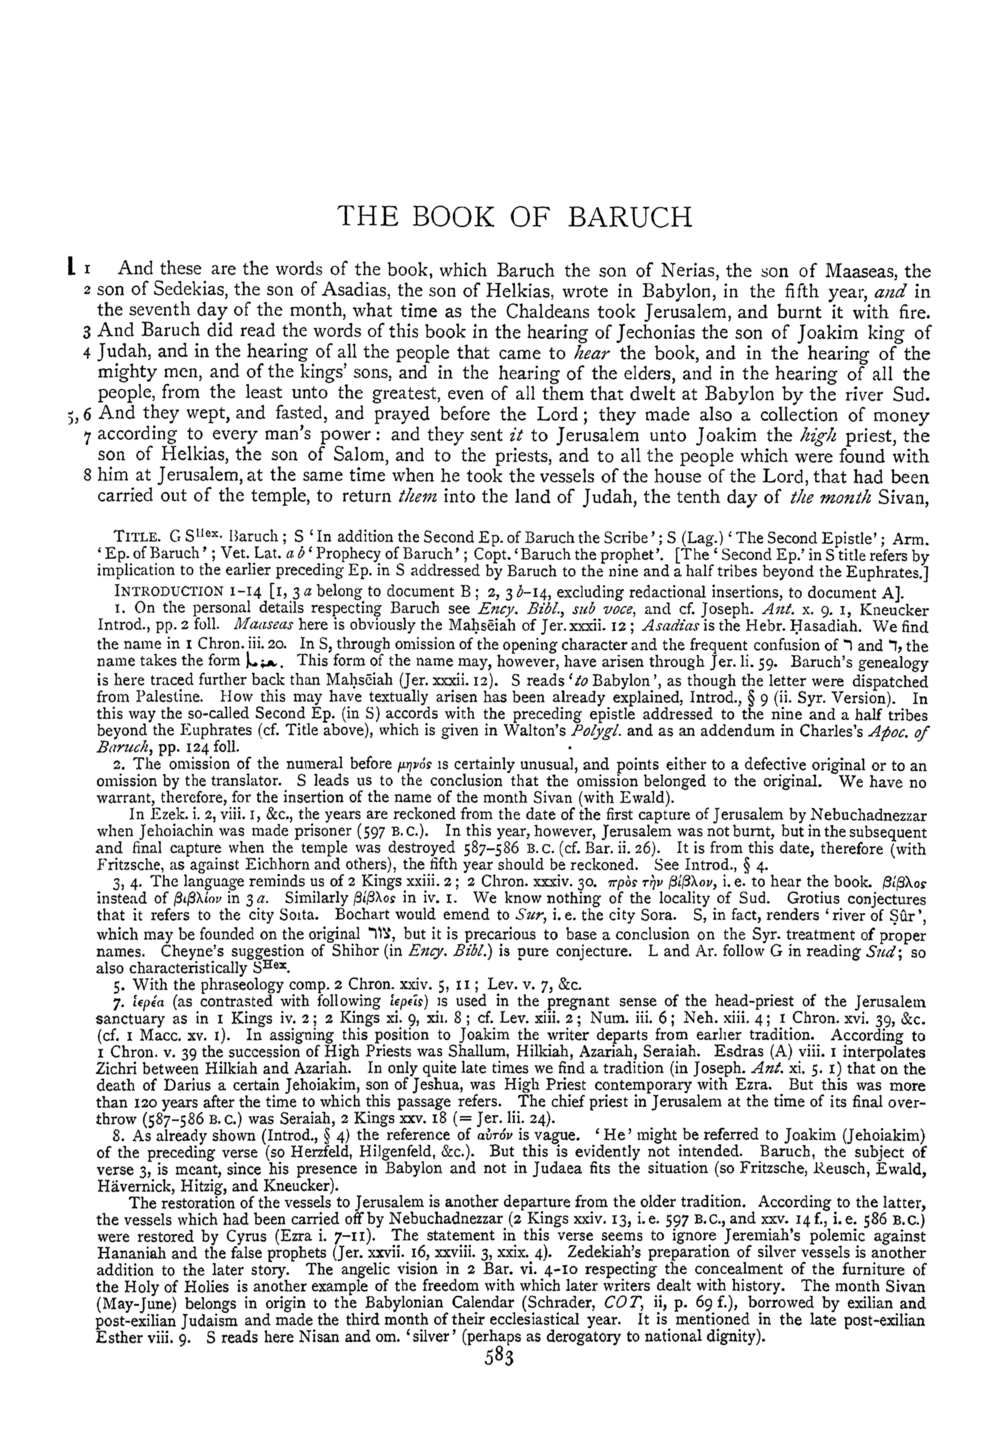 Image of page 583